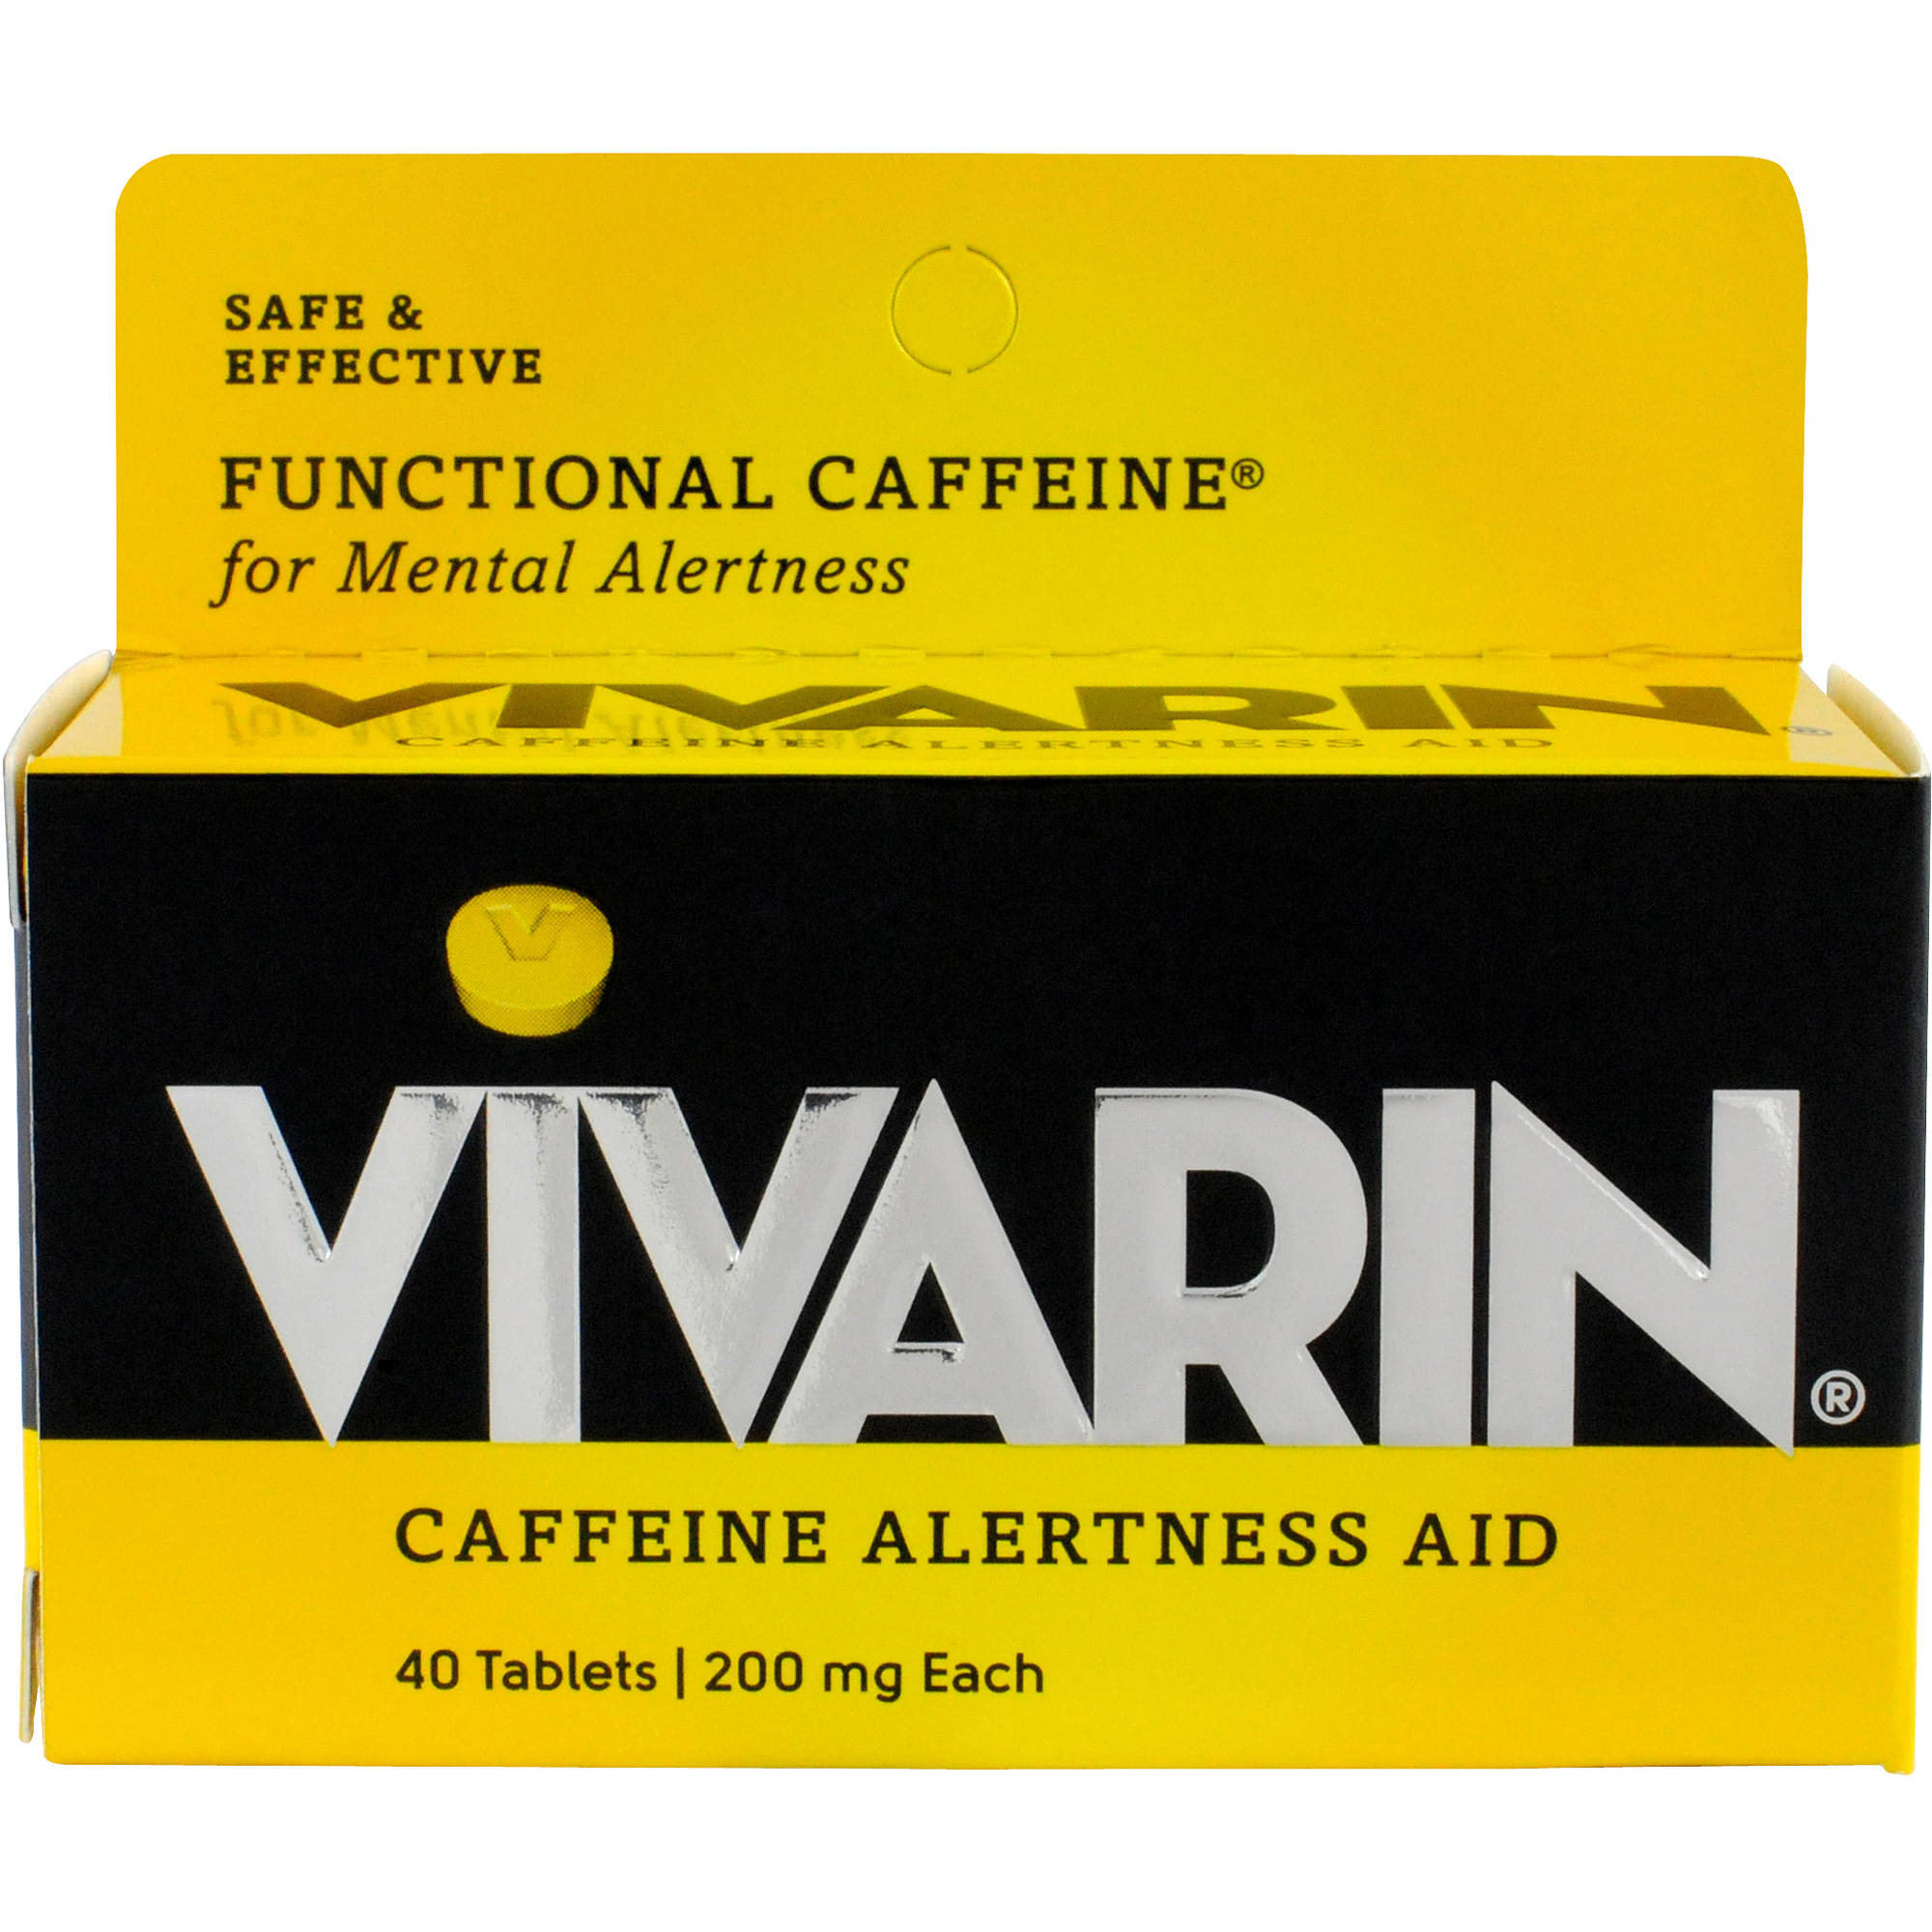 Vivarin Caffeine Alertness Aid, 200mg, 40 count